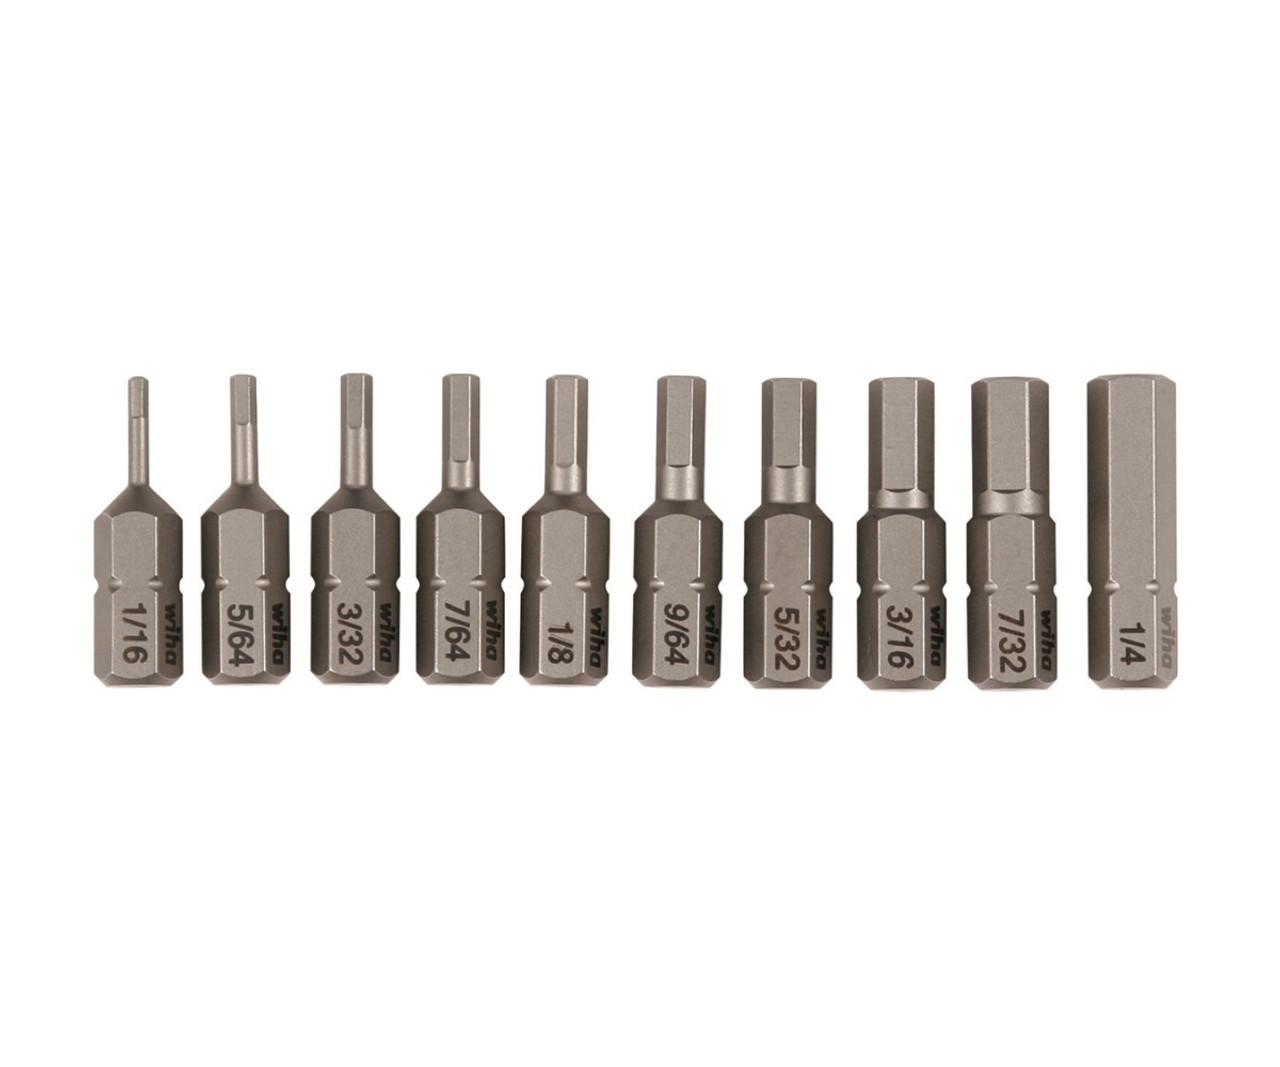 Uncoated 0.1811 Cutting Diameter 2 Flutes 130/° Cutting Angle 0.5000 Cutting Length 1-1//2 Length Carbide 1//8 Shank Diameter KYOCERA 155-1811.500 Series 155 Inverse Diameter Micro Drill Bit